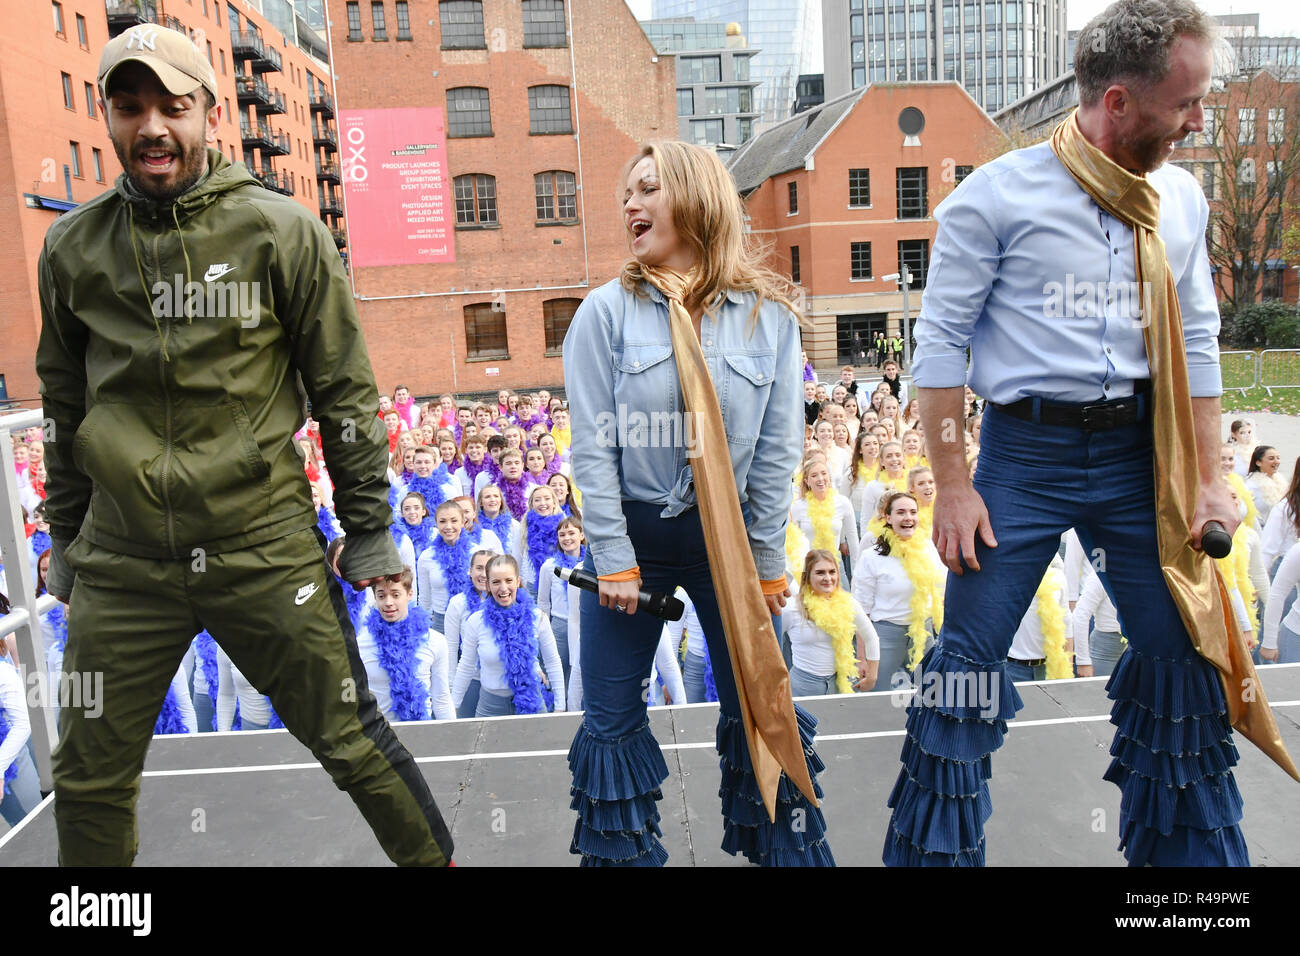 London, UK. 26th Nov, 2018. Strictly Come Dancing - James Jordan and Ola Jordan and Lucy Bardick is a Choreographer and casts Cassie Clare and Lukas Hunt join Mamma Mia! Here we go again hosts Guinness World Records largest disco dance at London Waterloo on 26 November 2018, London, UK Credit: Picture Capital/Alamy Live News - Stock Image